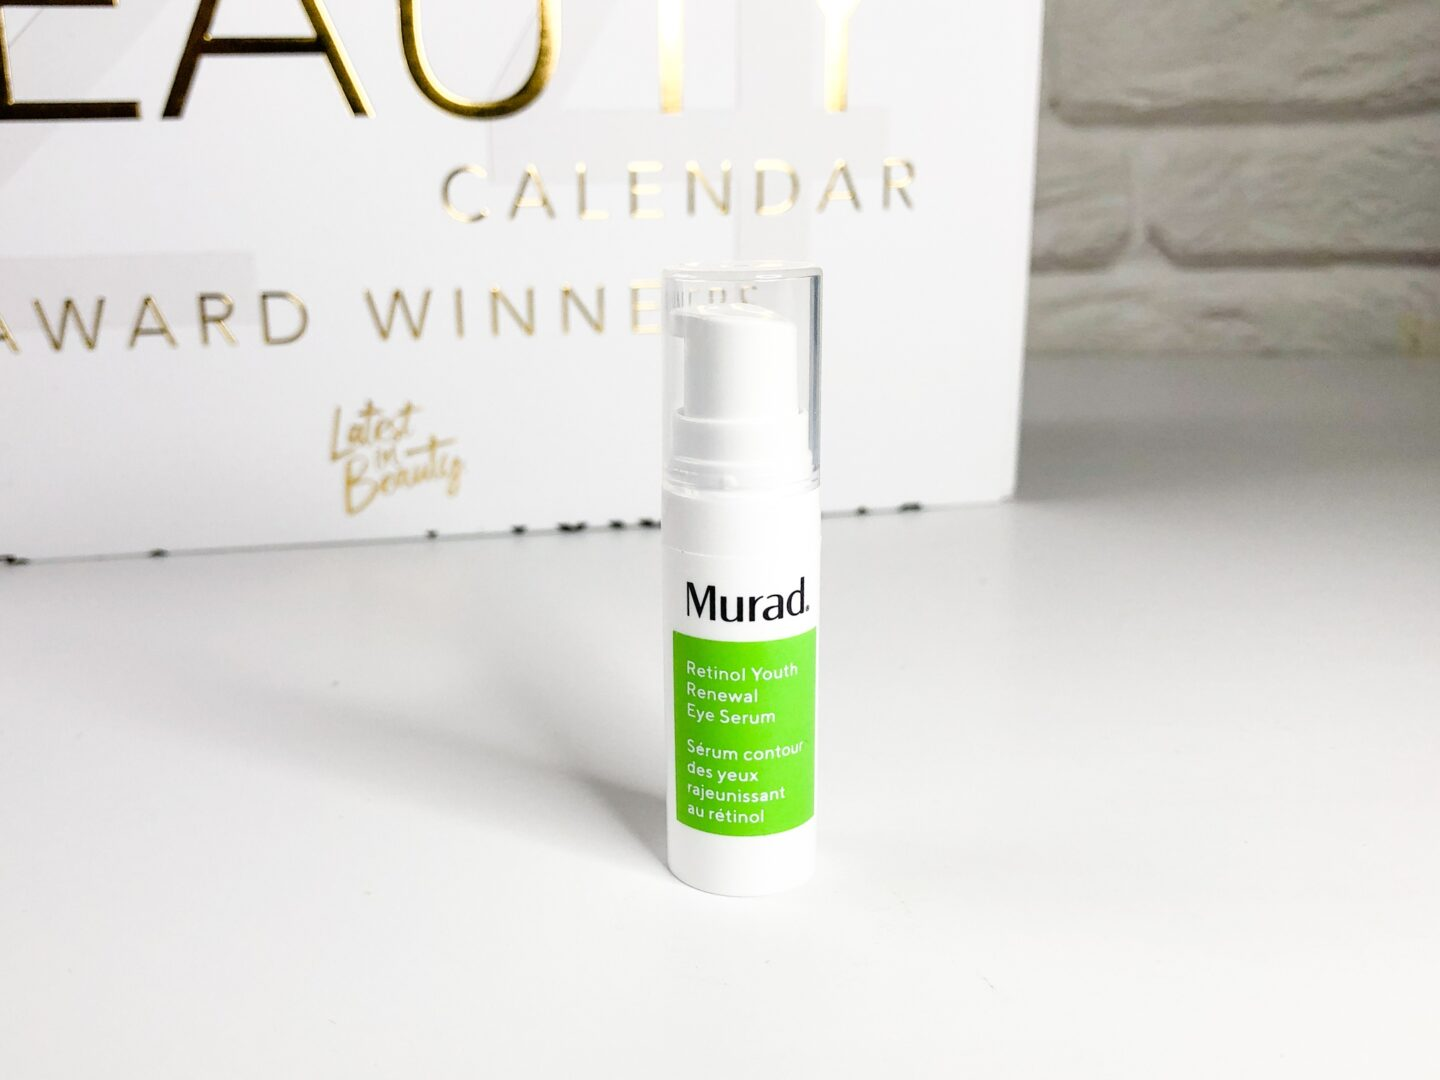 Murad Retinol Youth Renewal Eye Serum - Beauty Calendar: The Award Winners